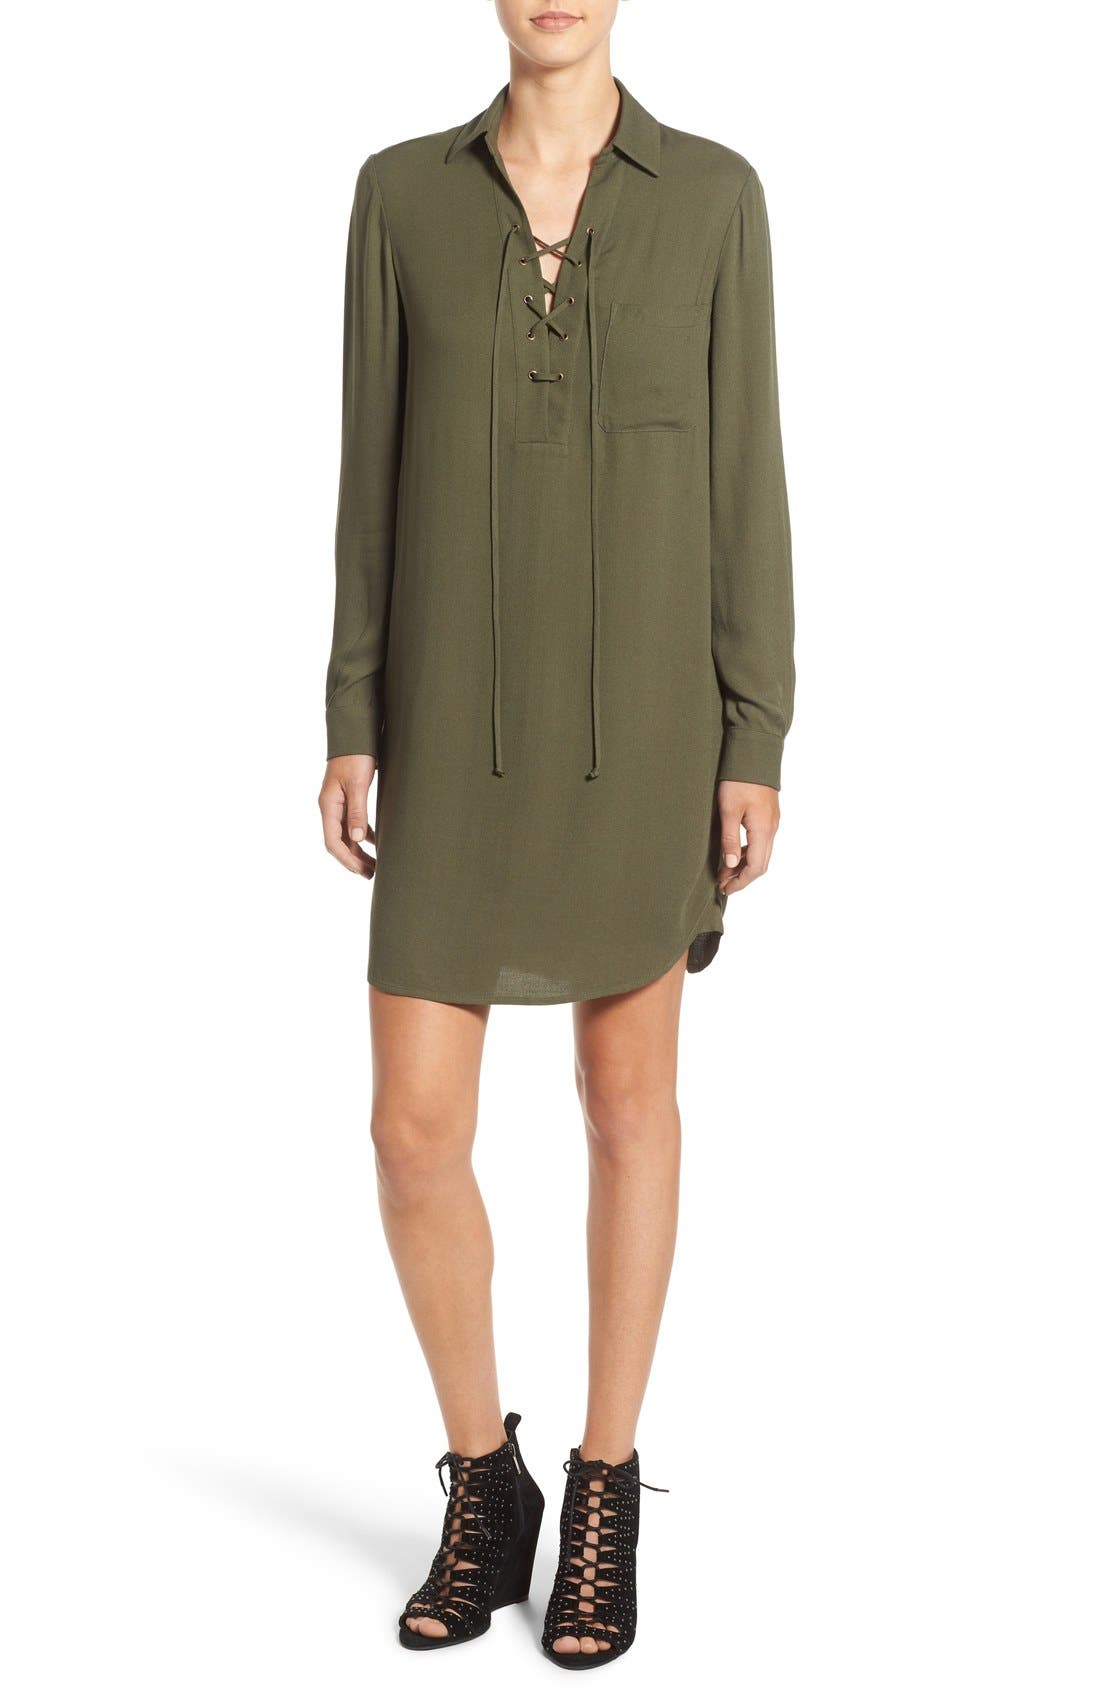 Alternate Image 1 Selected - WAYF Lace-Up Shirtdress